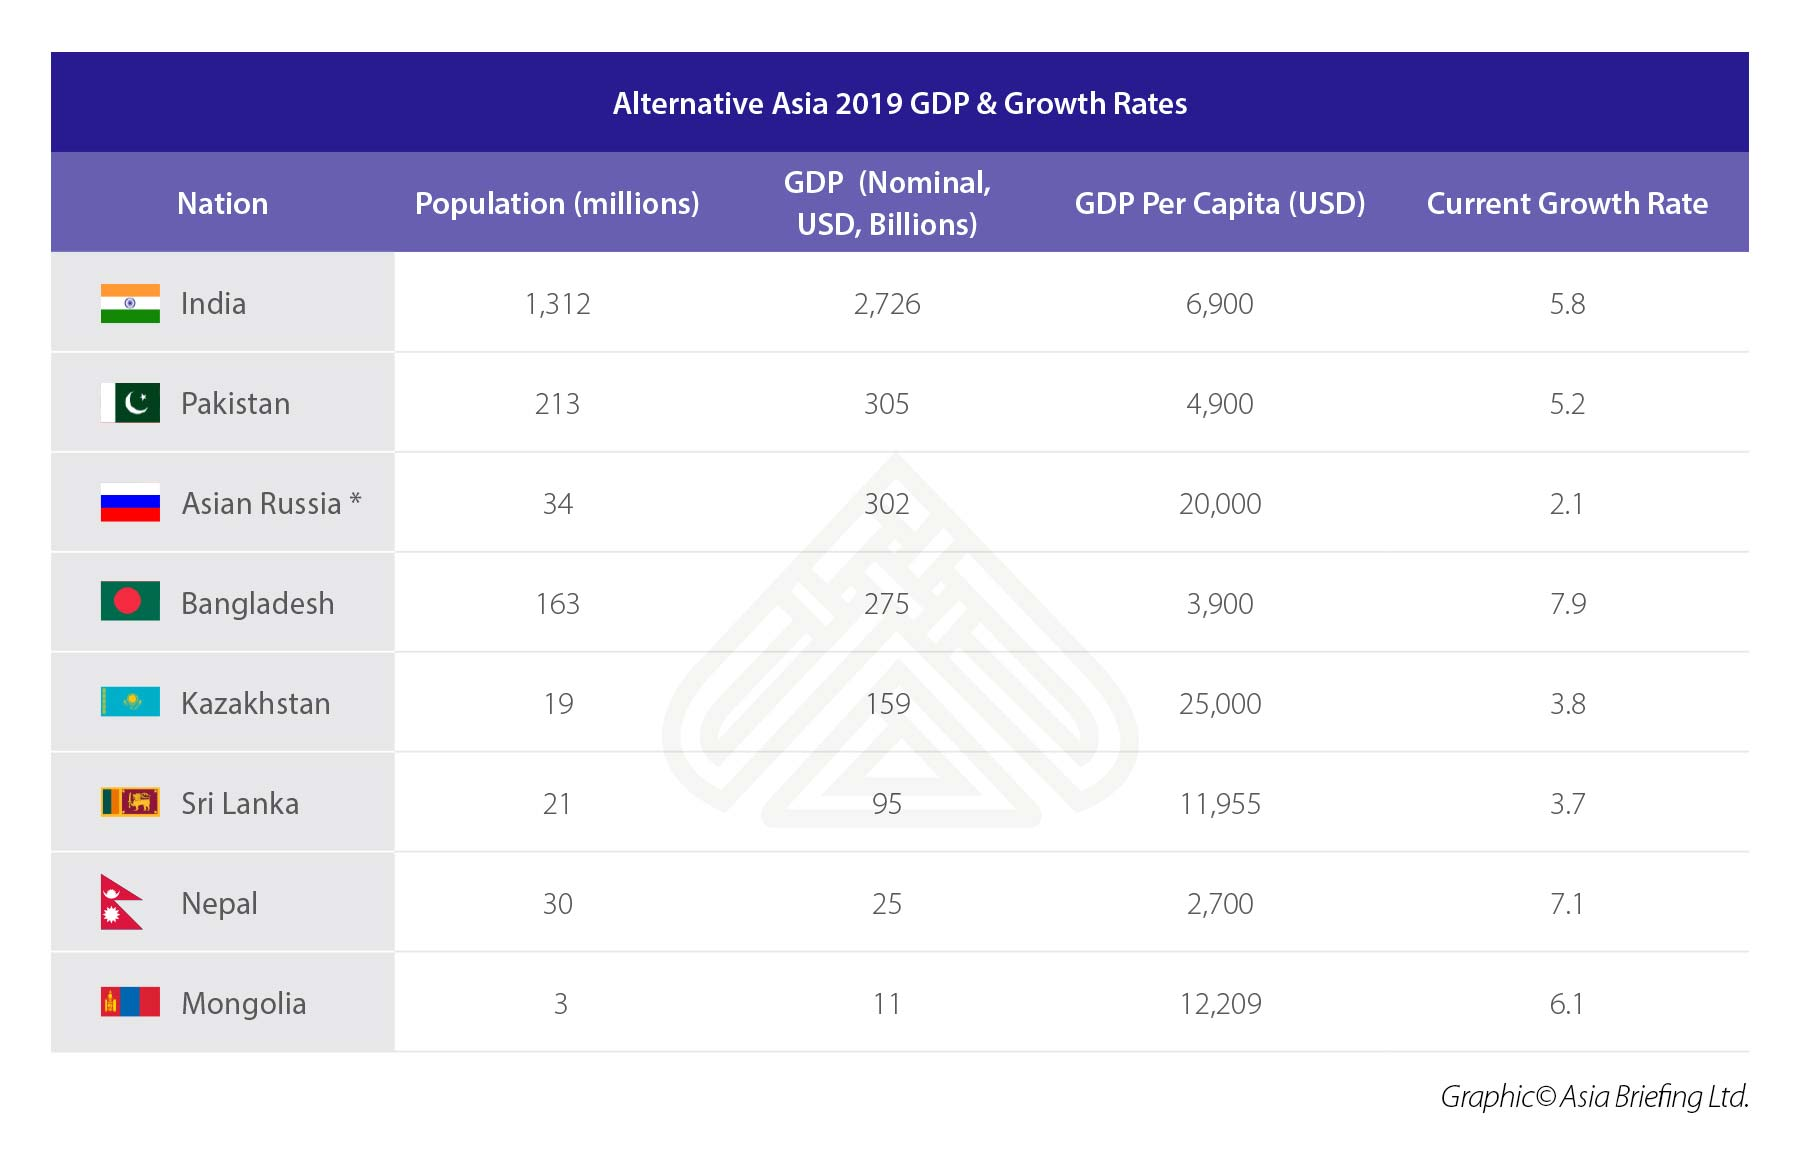 Alternative Asia 2019 GDP & Growth Rates (1)